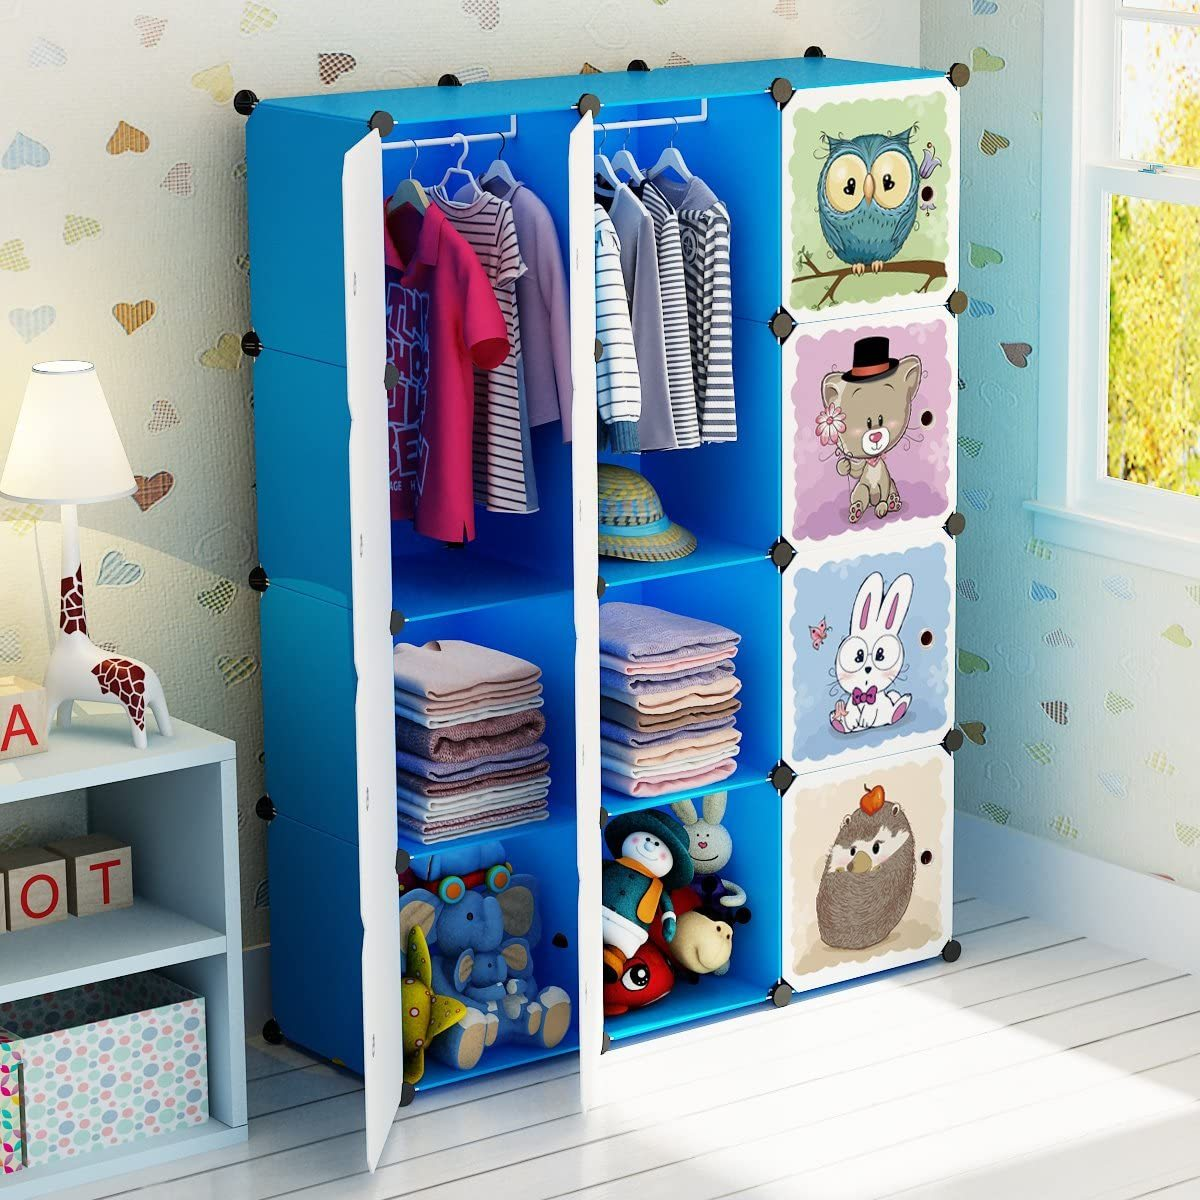 MAGINELS Portable Kid Organizers and Cute Baby Storage ...